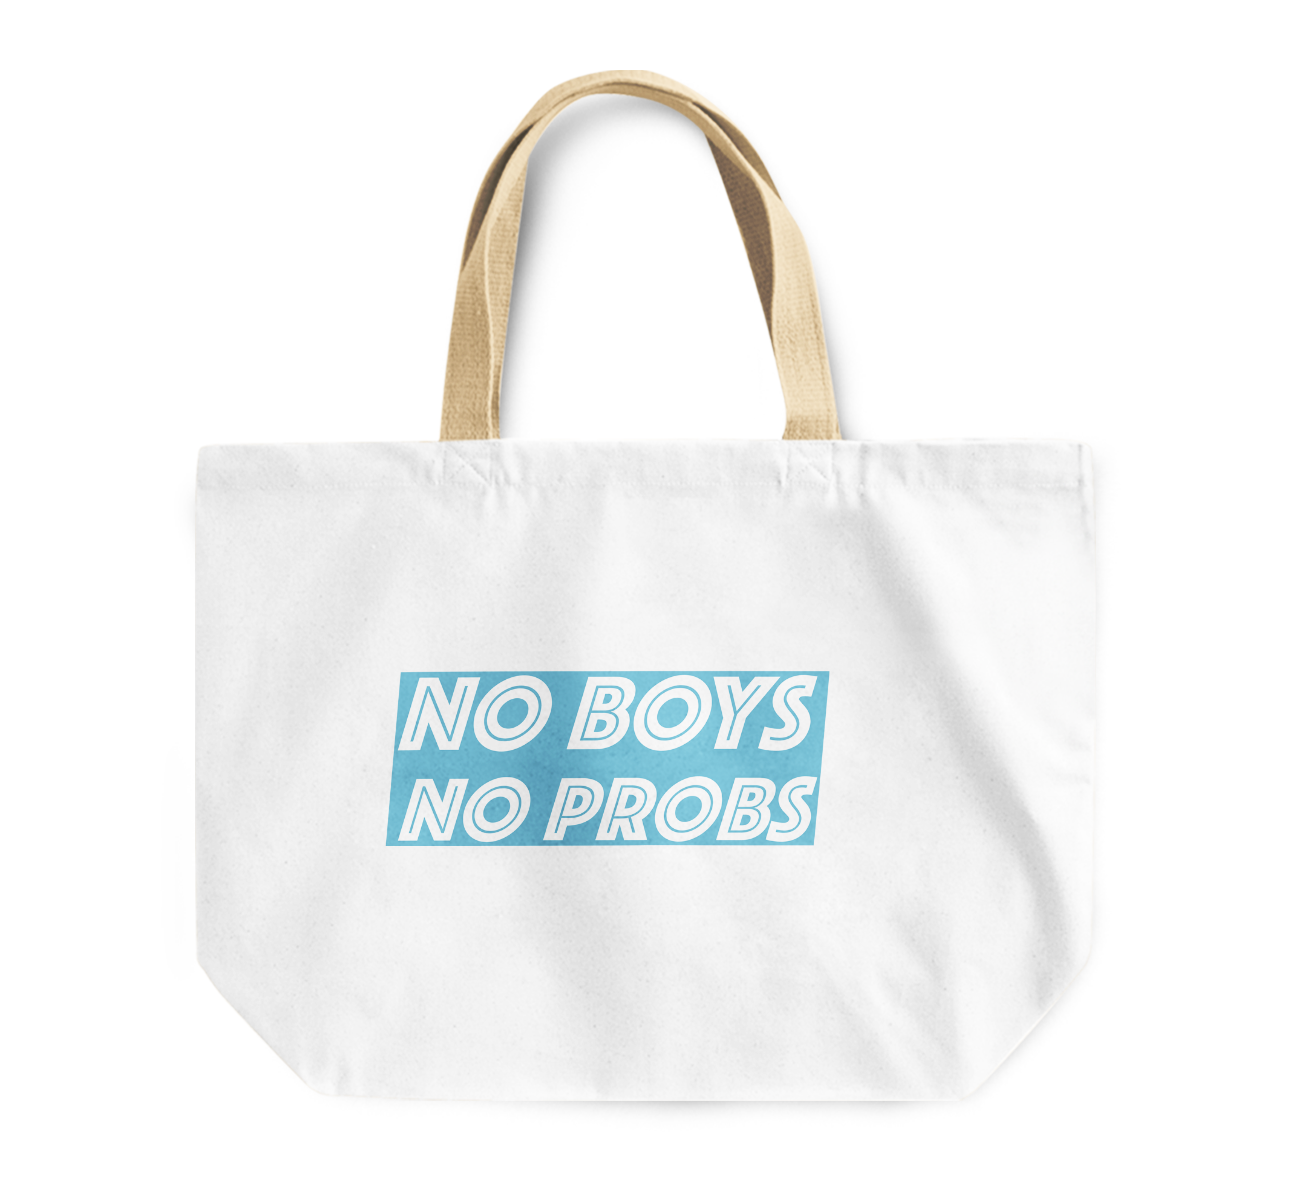 Tote Bag No Boys No Problems Best Friends Gift Funny Reusable Shopping Bag By Loud Universe